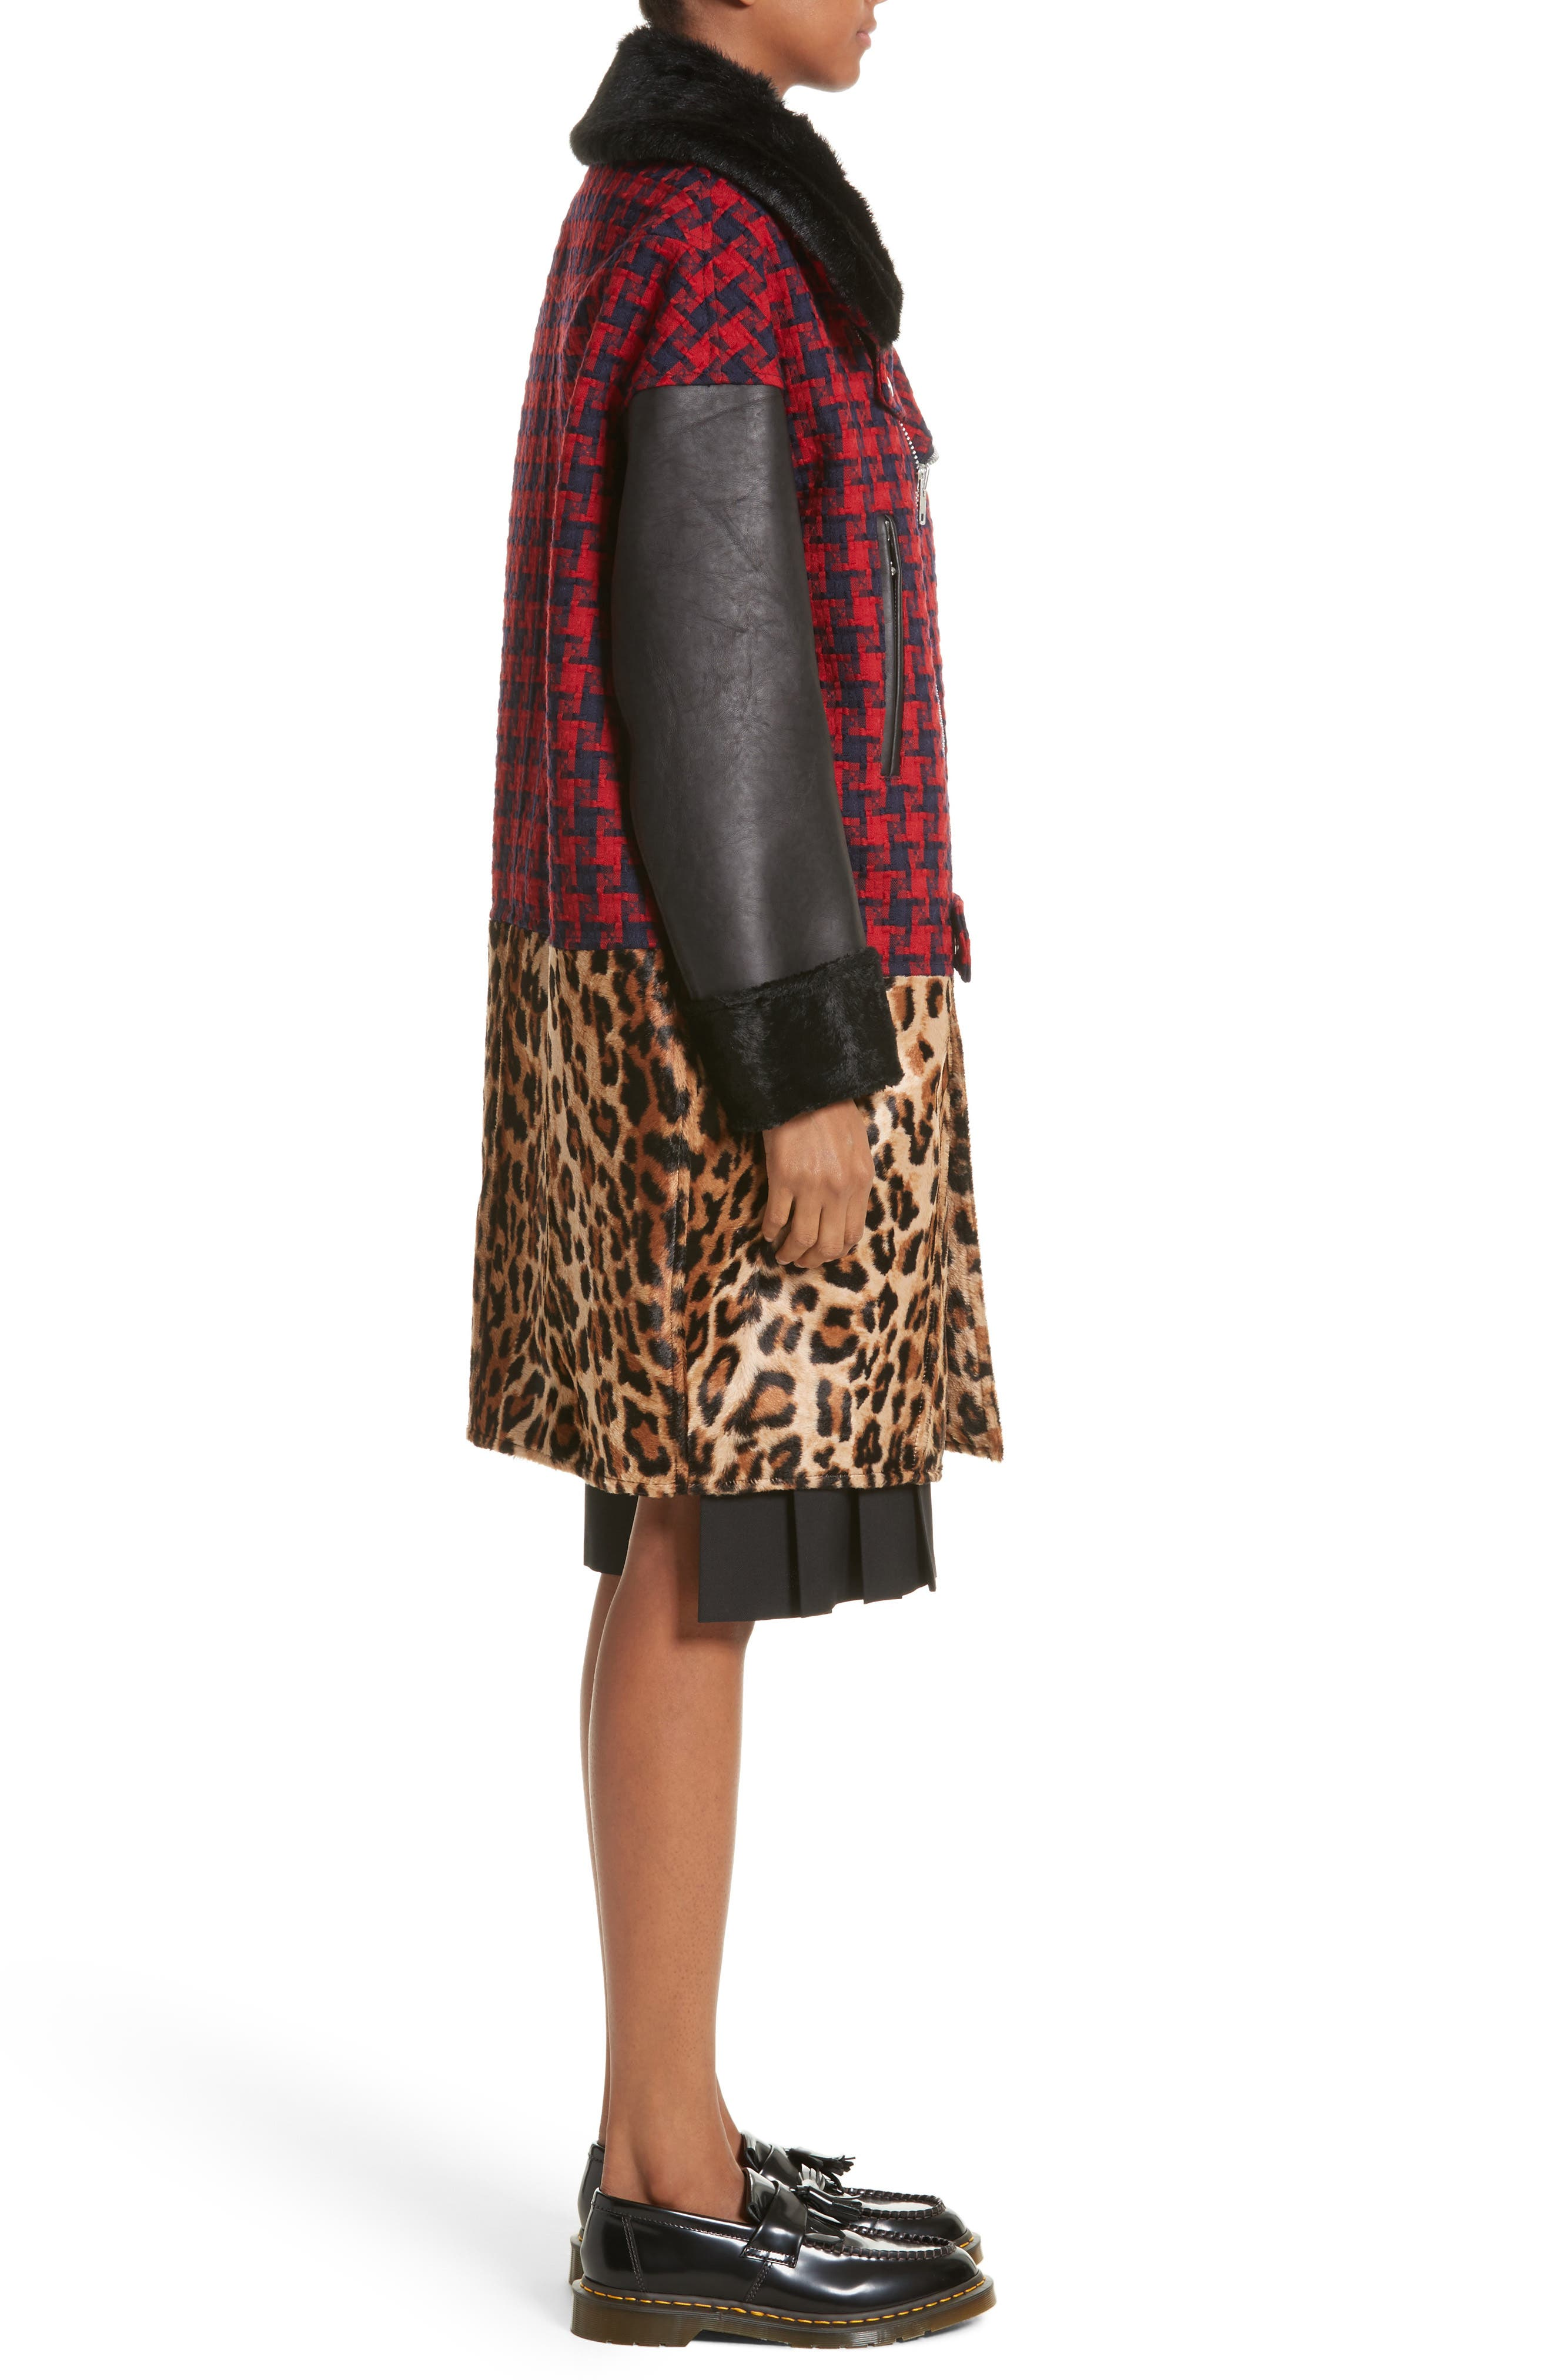 Buffalo Check Moto Jacket with Faux Fur Trim,                             Alternate thumbnail 3, color,                             Red/Nvy X Bge/Brn